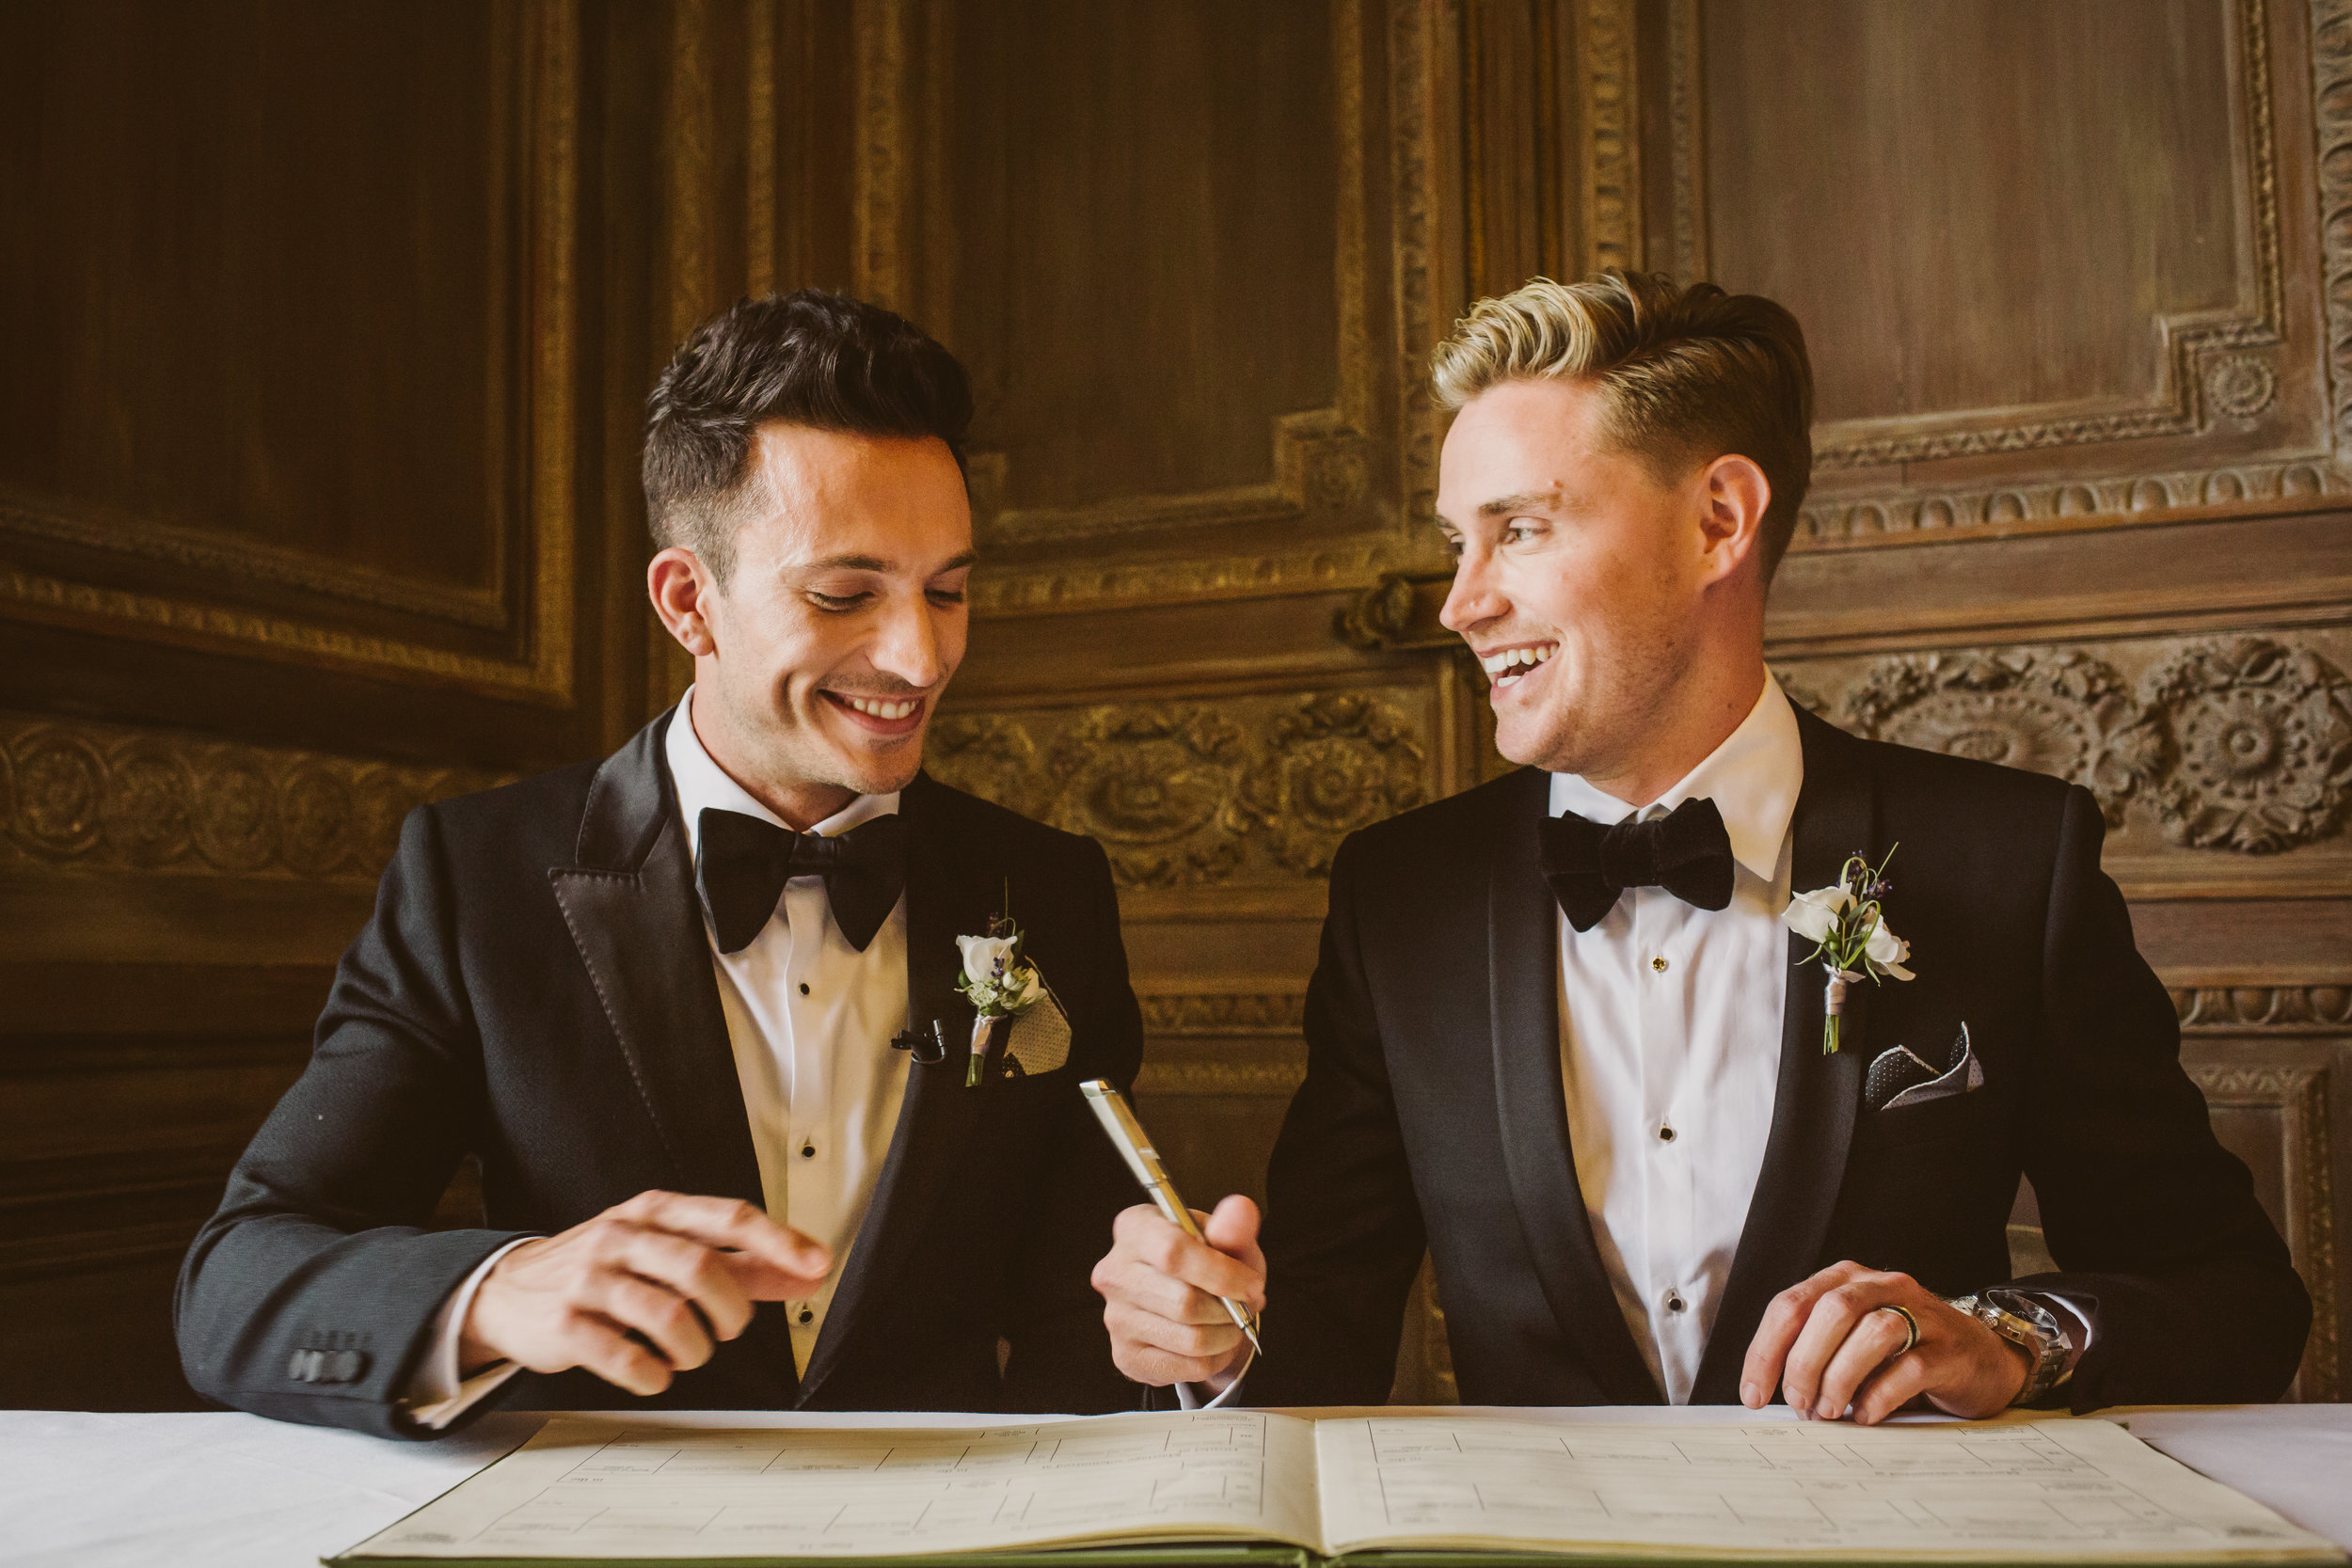 mr-theodore_same-sex-wedding11.jpg